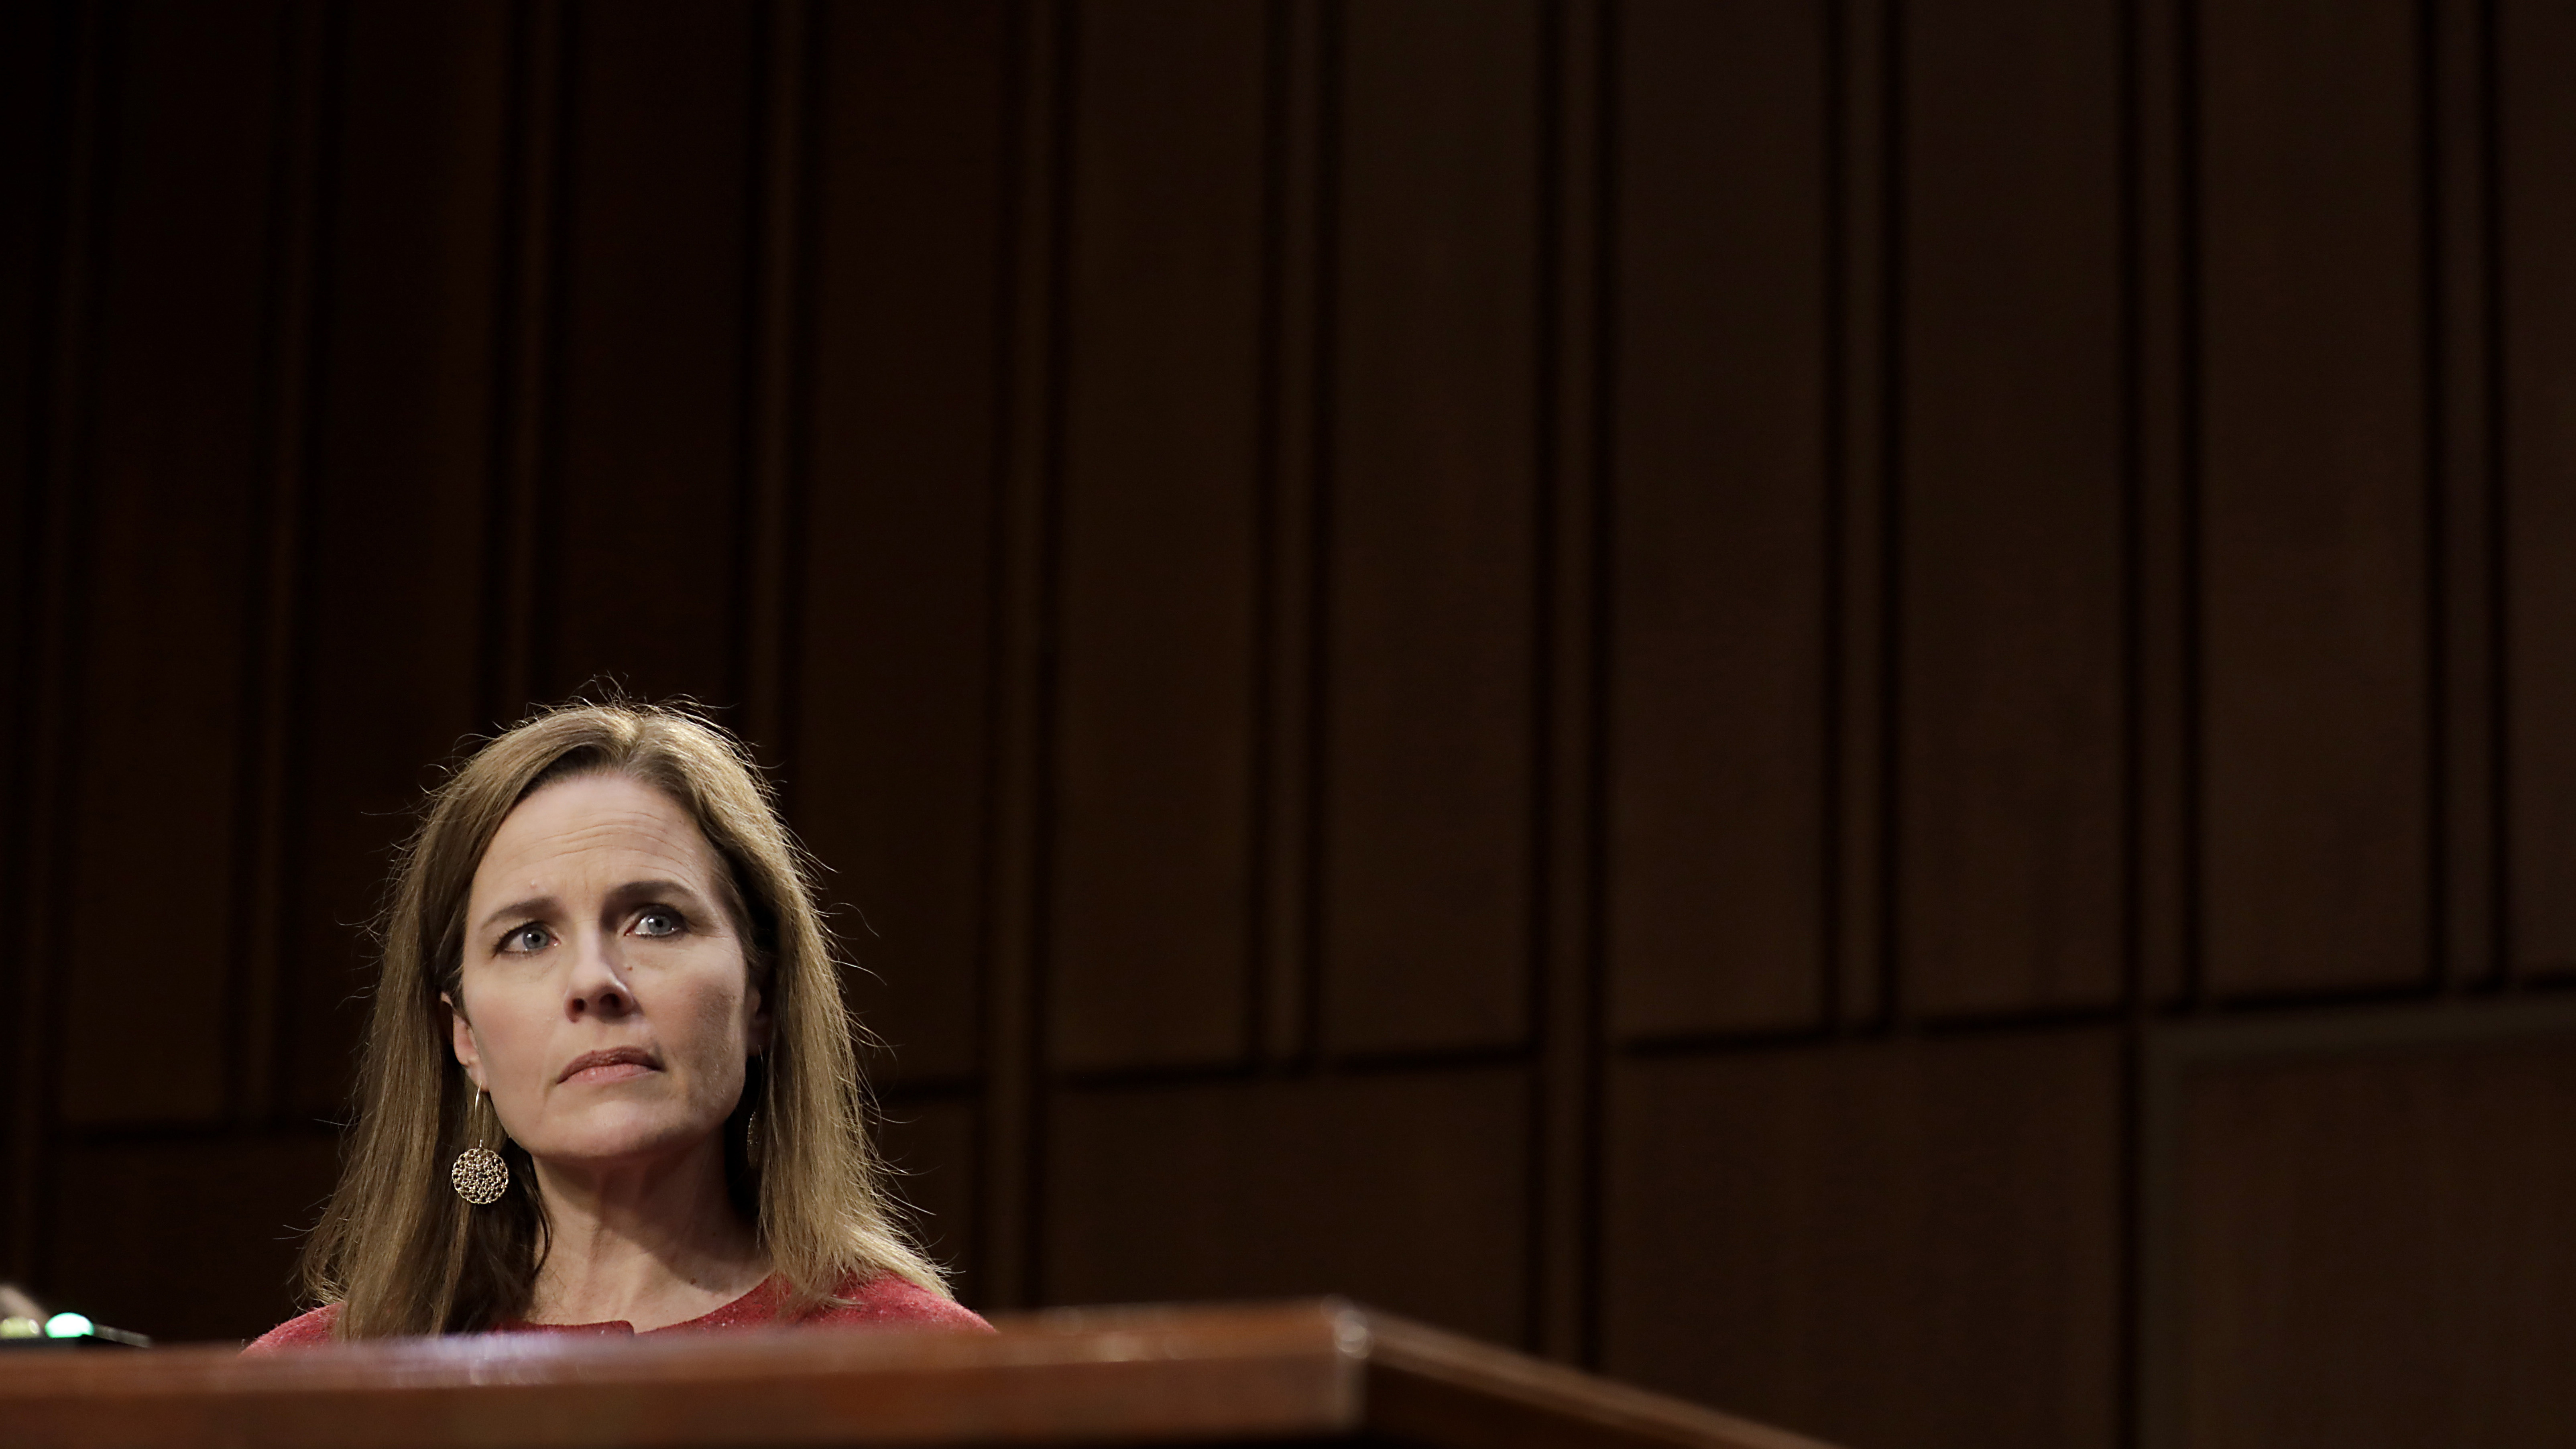 Amy Coney Barrett's calm demeanor during hearings is her 'superpower' Harmeet Dhillon says – Fox News